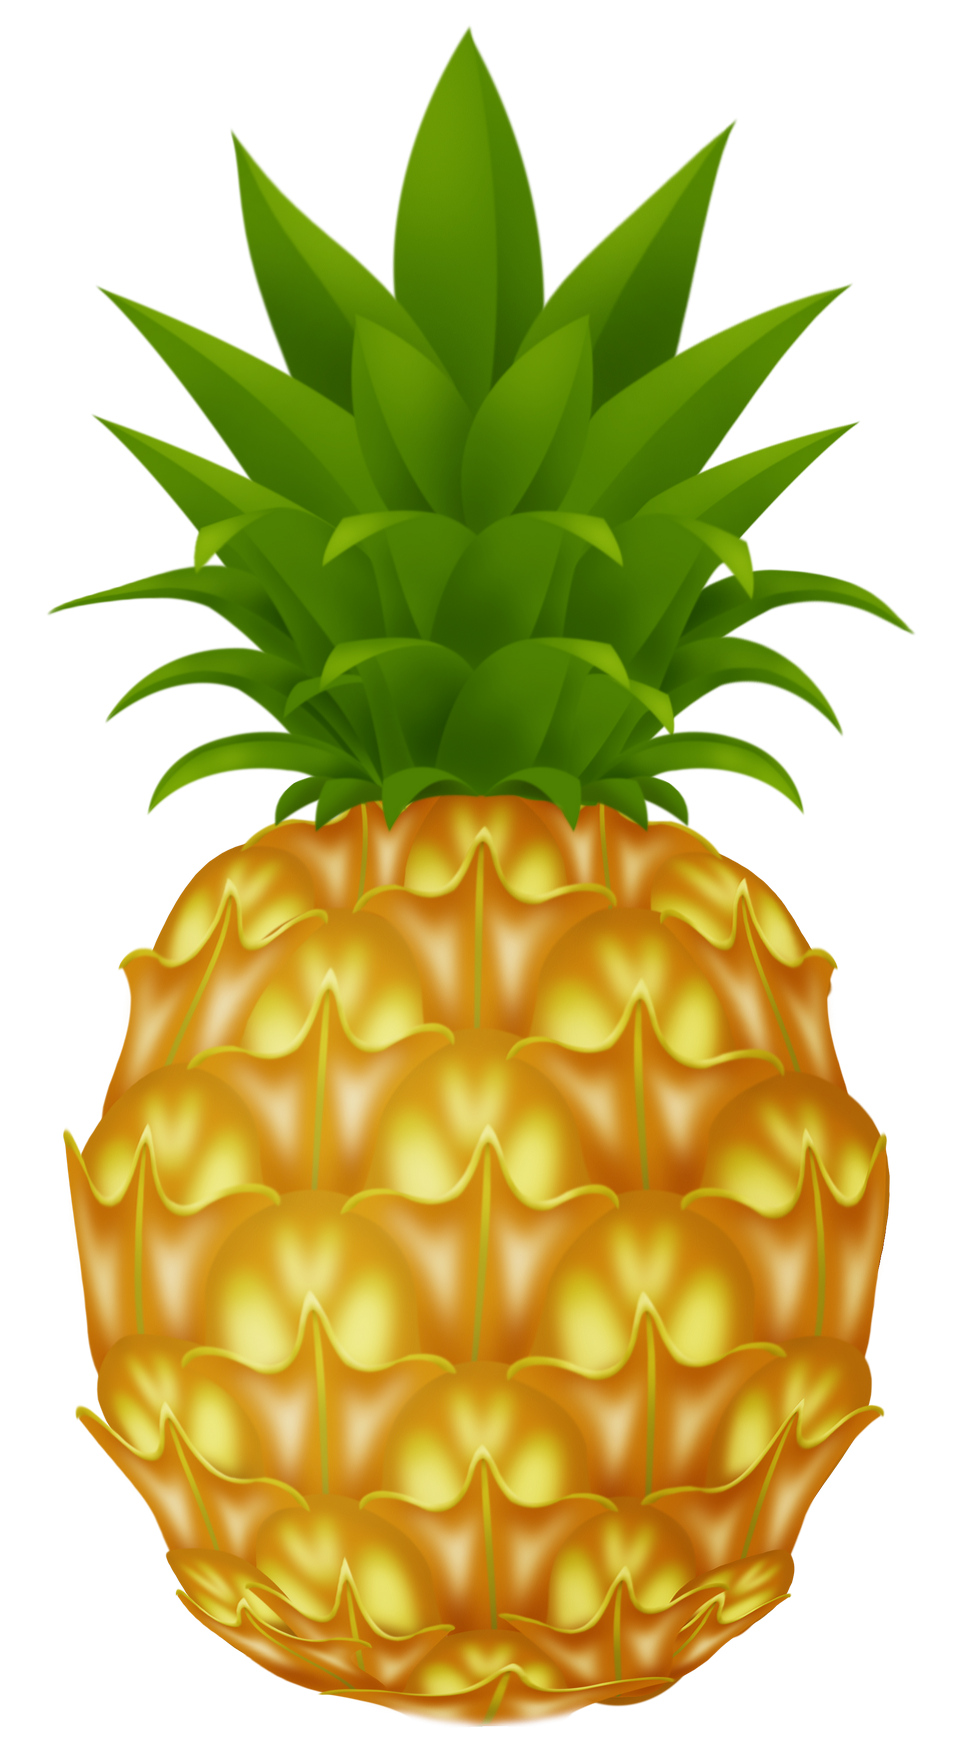 Pineapple clipart blue. Png image purepng free